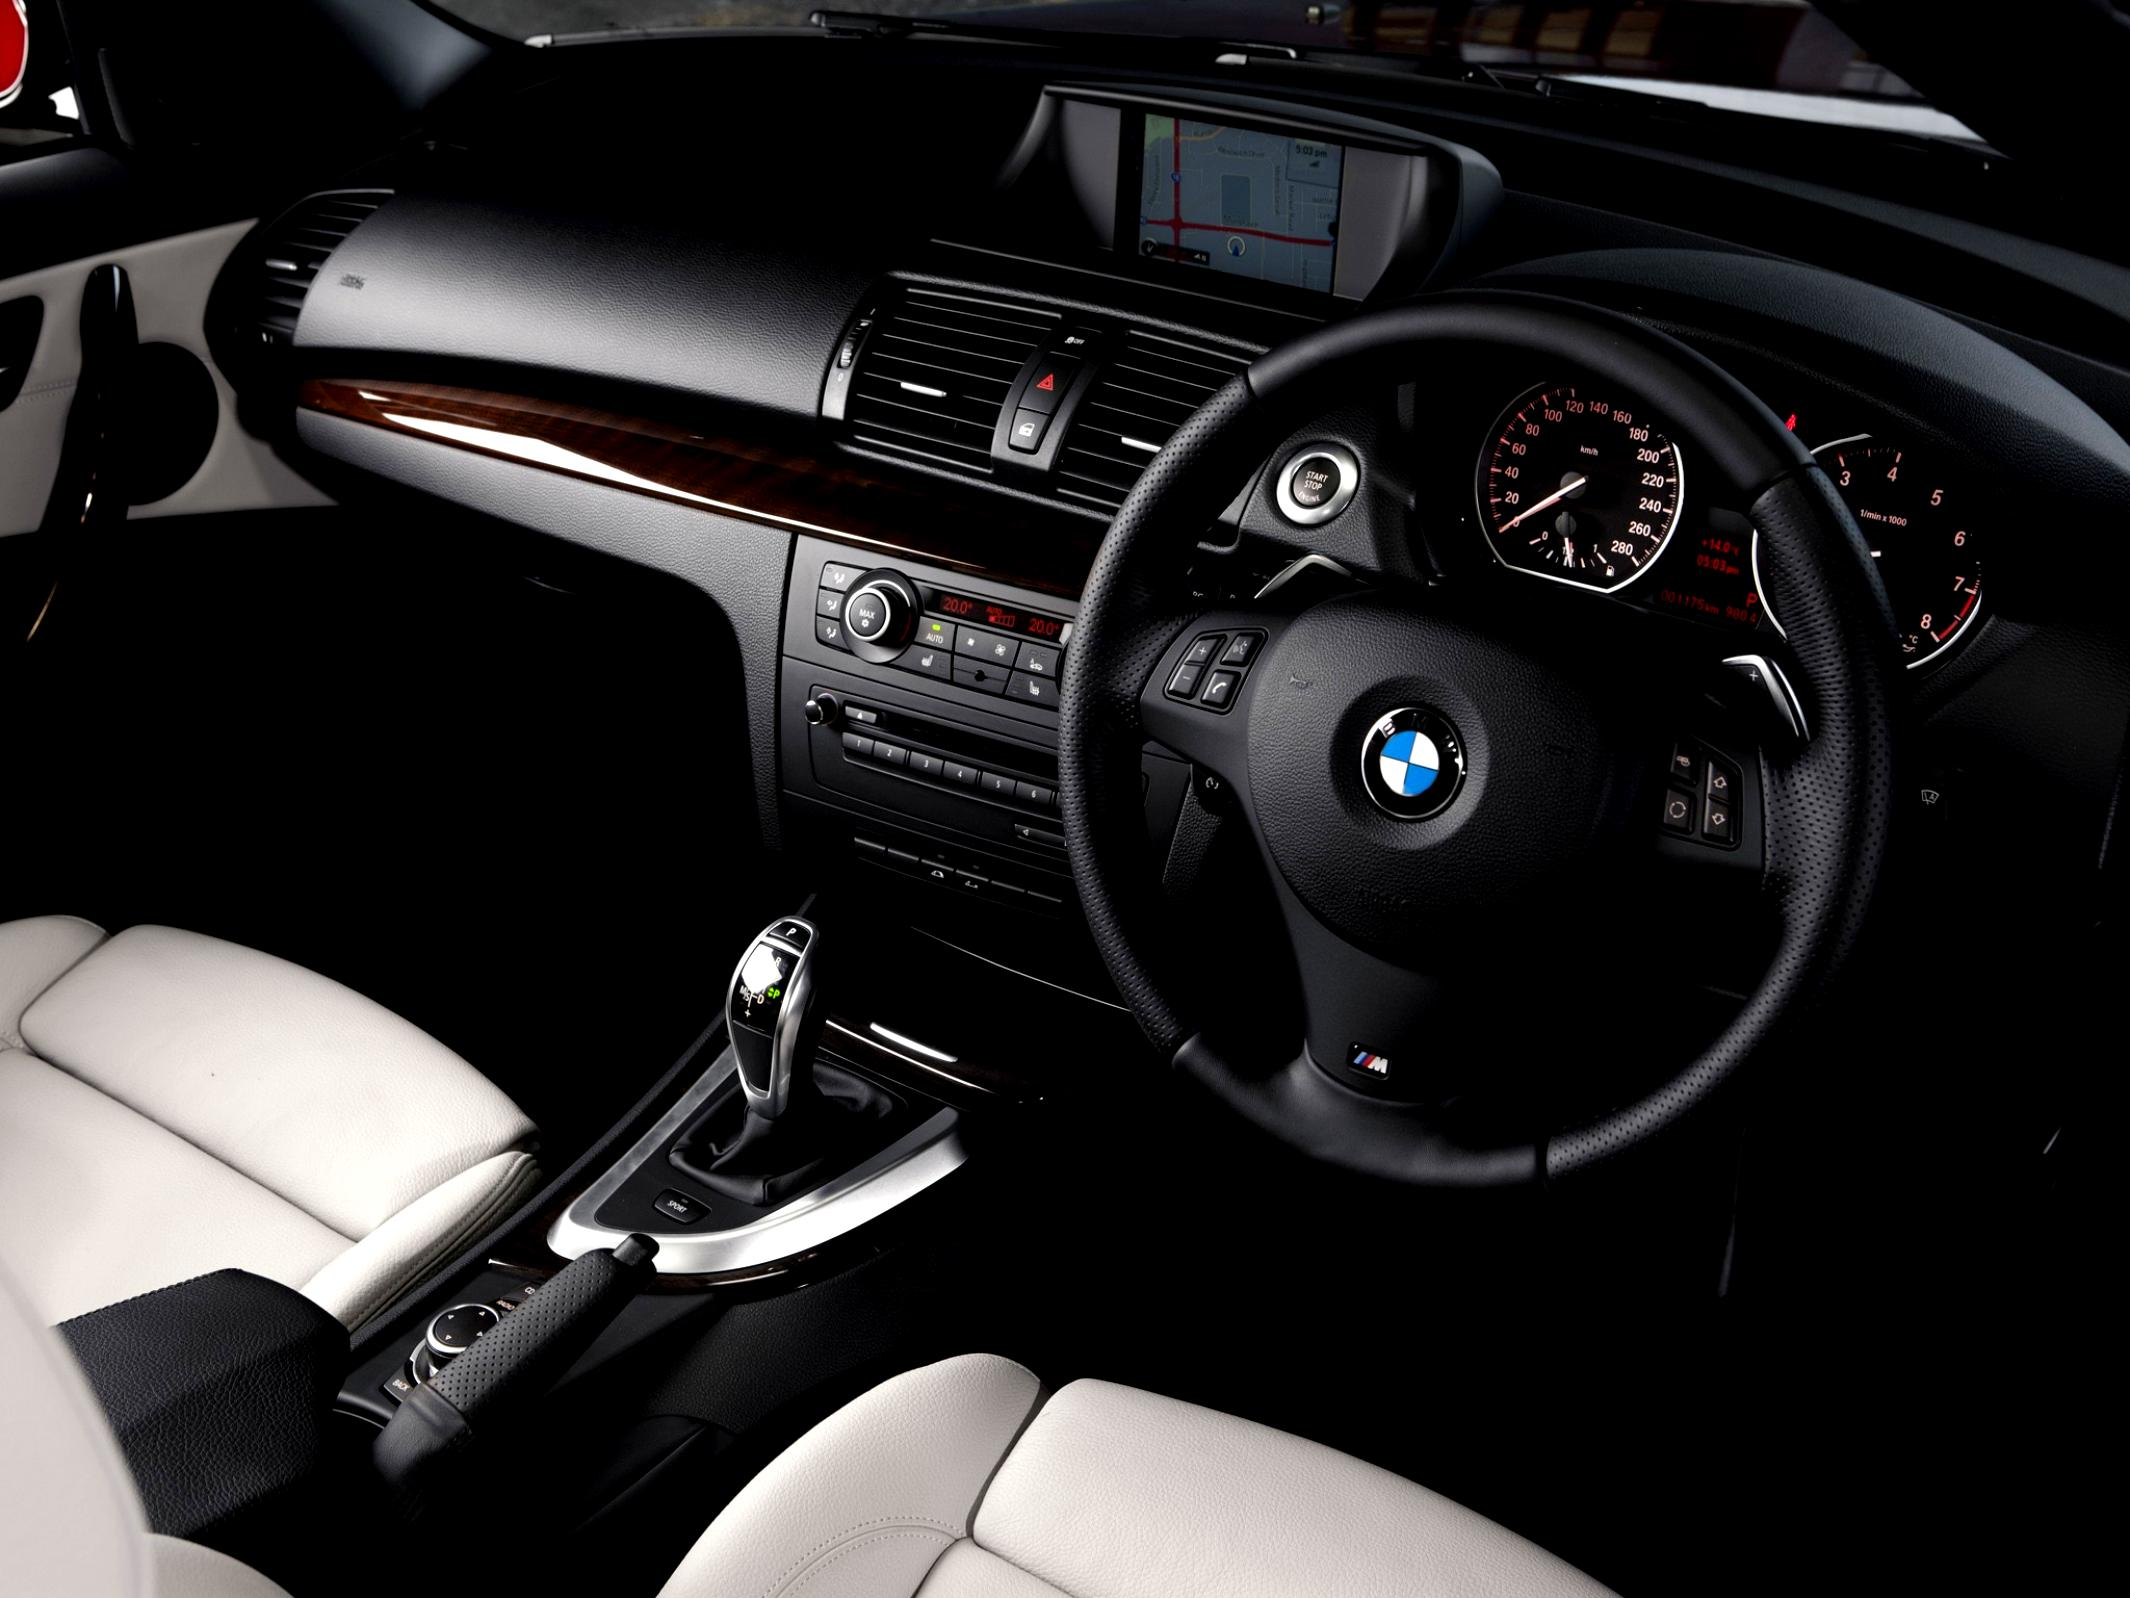 BMW 1 Series Cabriolet E88 2010 #38